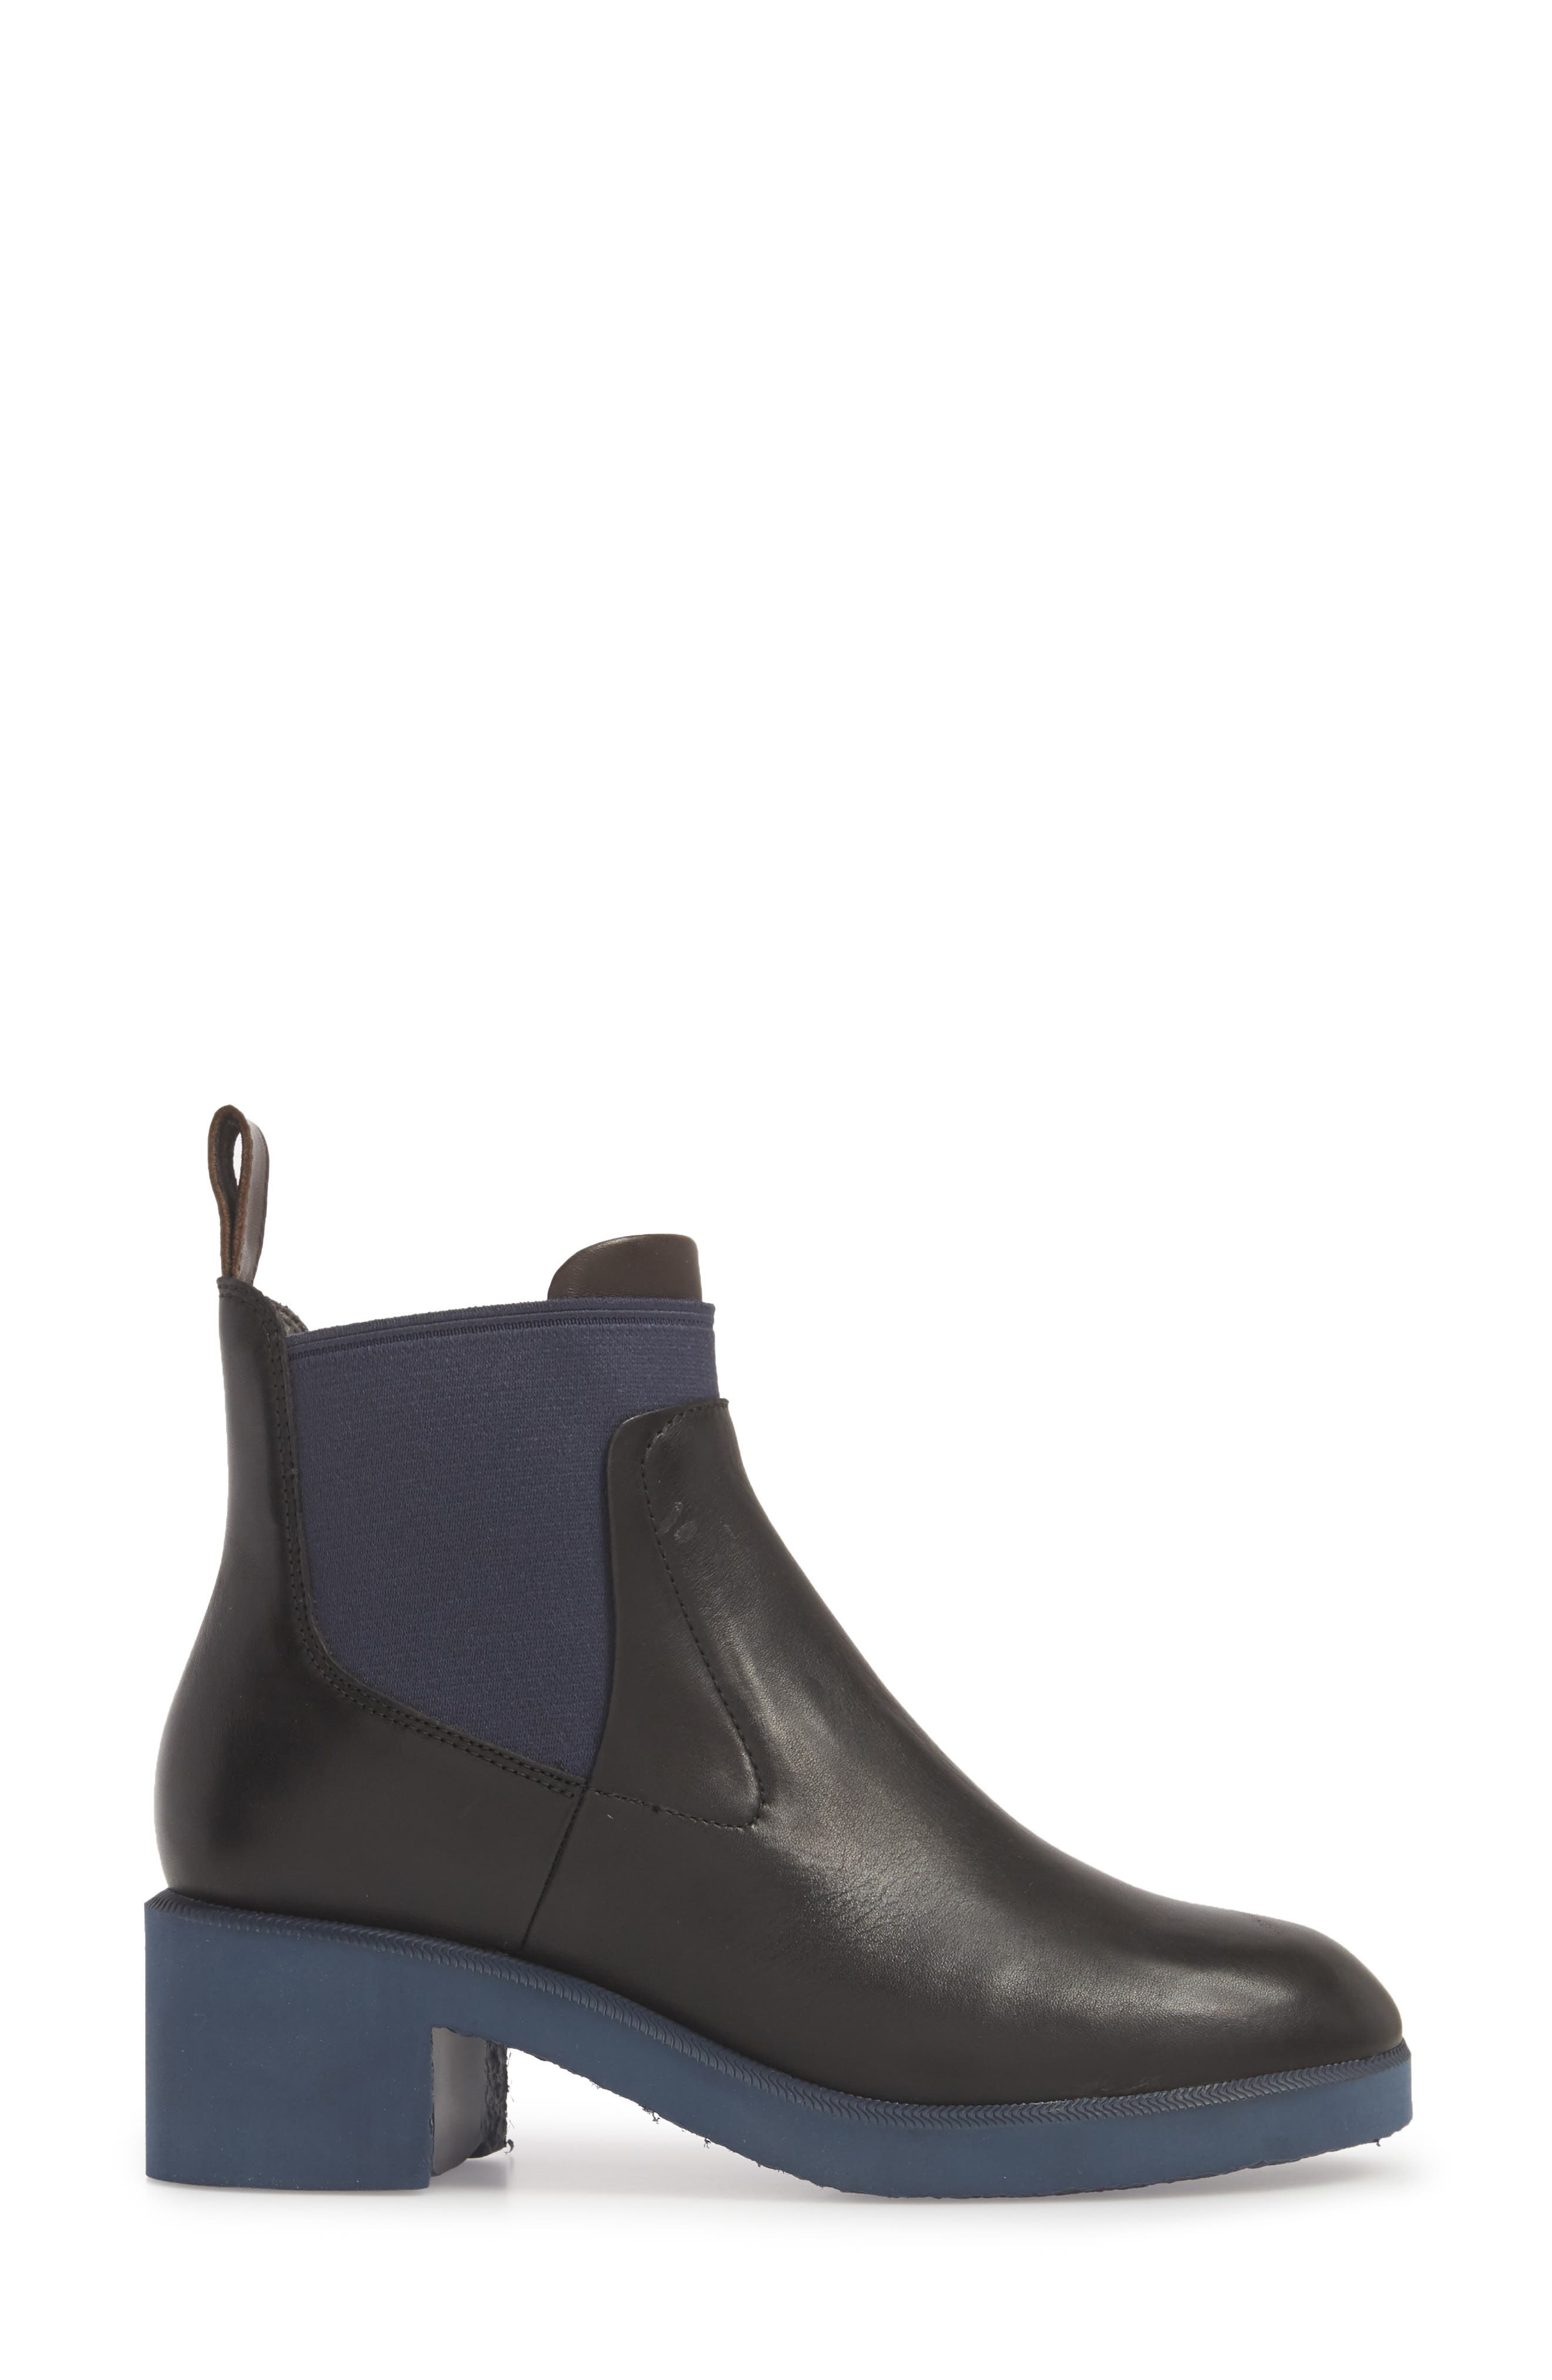 Whitnee Bootie,                             Alternate thumbnail 3, color,                             BLACK LEATHER/ NAVY